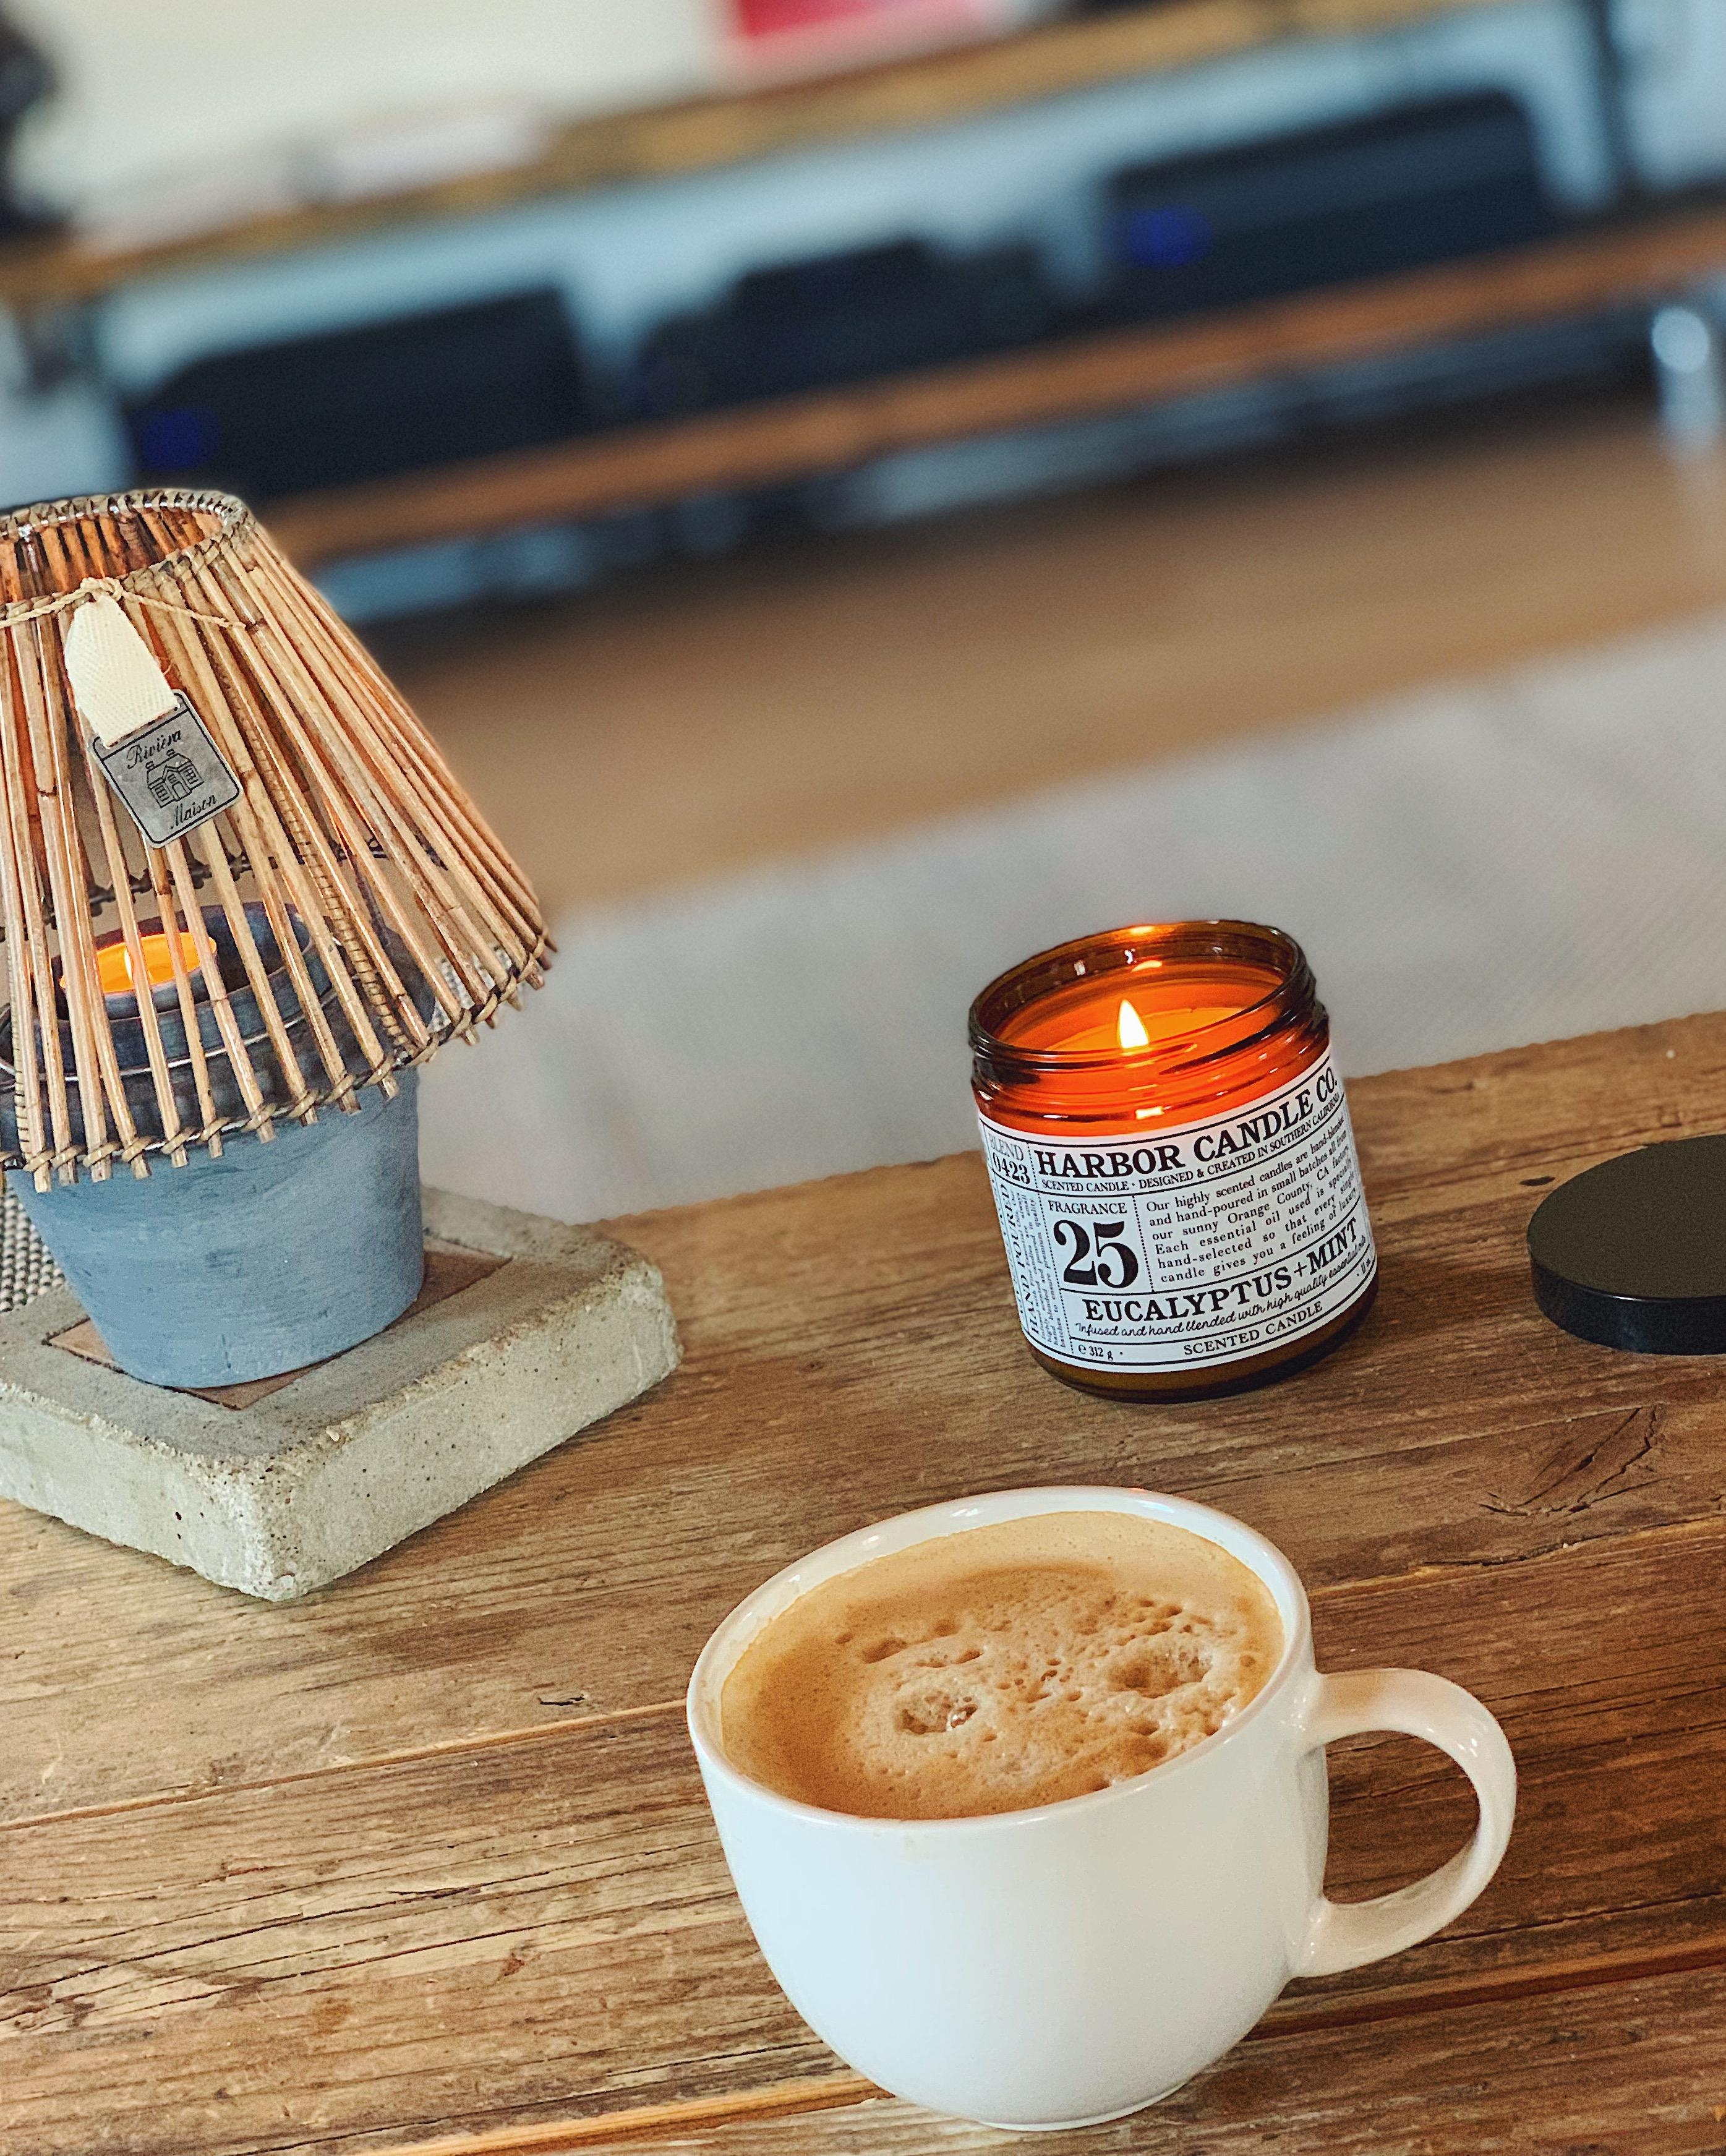 Happy sunday everyone  und allen muettern einen schoenen muttertag  sonntag coffee candle  5b04d1e7 1921 48d2 8942 1318d92c4712